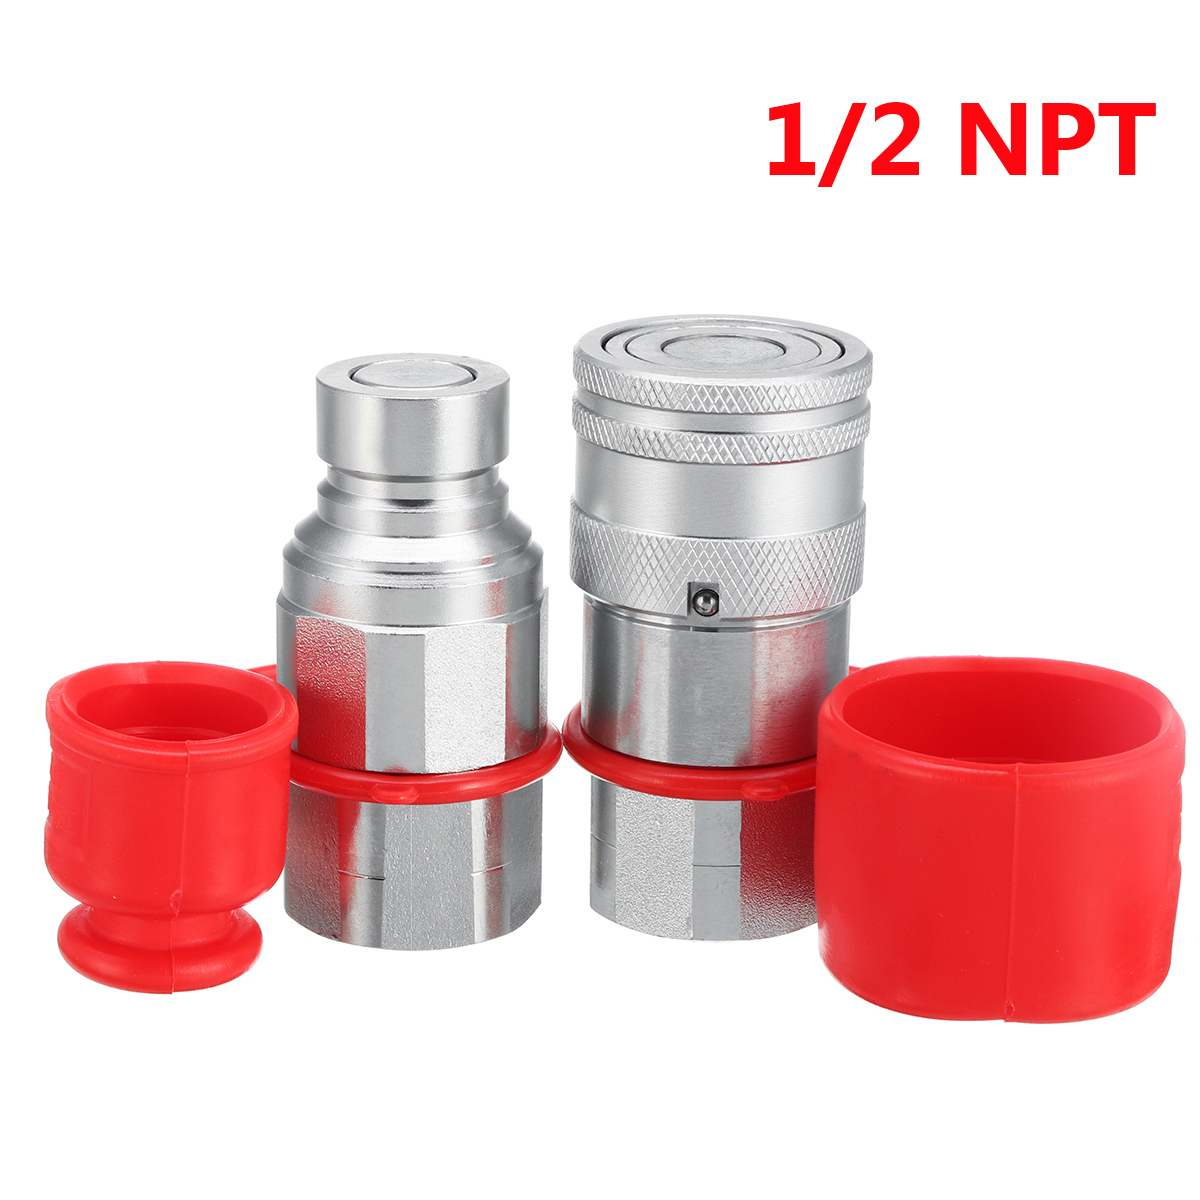 1/2 NPT Male Female Flat Face Coupler Adapter Skid Steer Hydraulic Quick Connect Coupler Cover Coupling Set for ISO16028 Series 25 32 female threaded pneumatic quick connect coupling